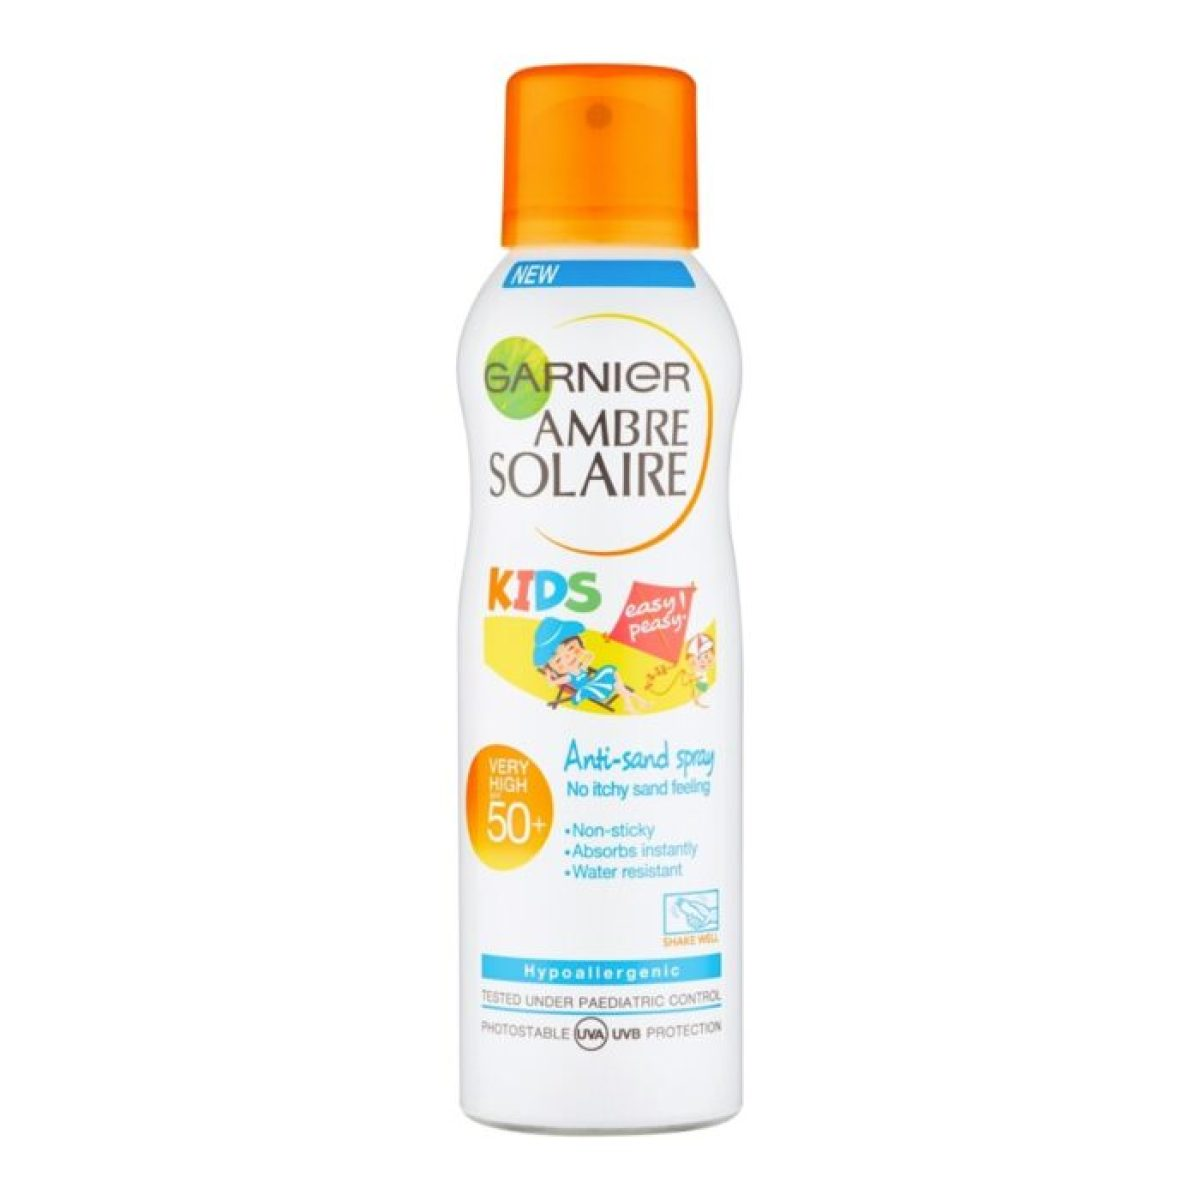 garnier-ambre-solaire-kids-anti-sand-spray-spf50-hr